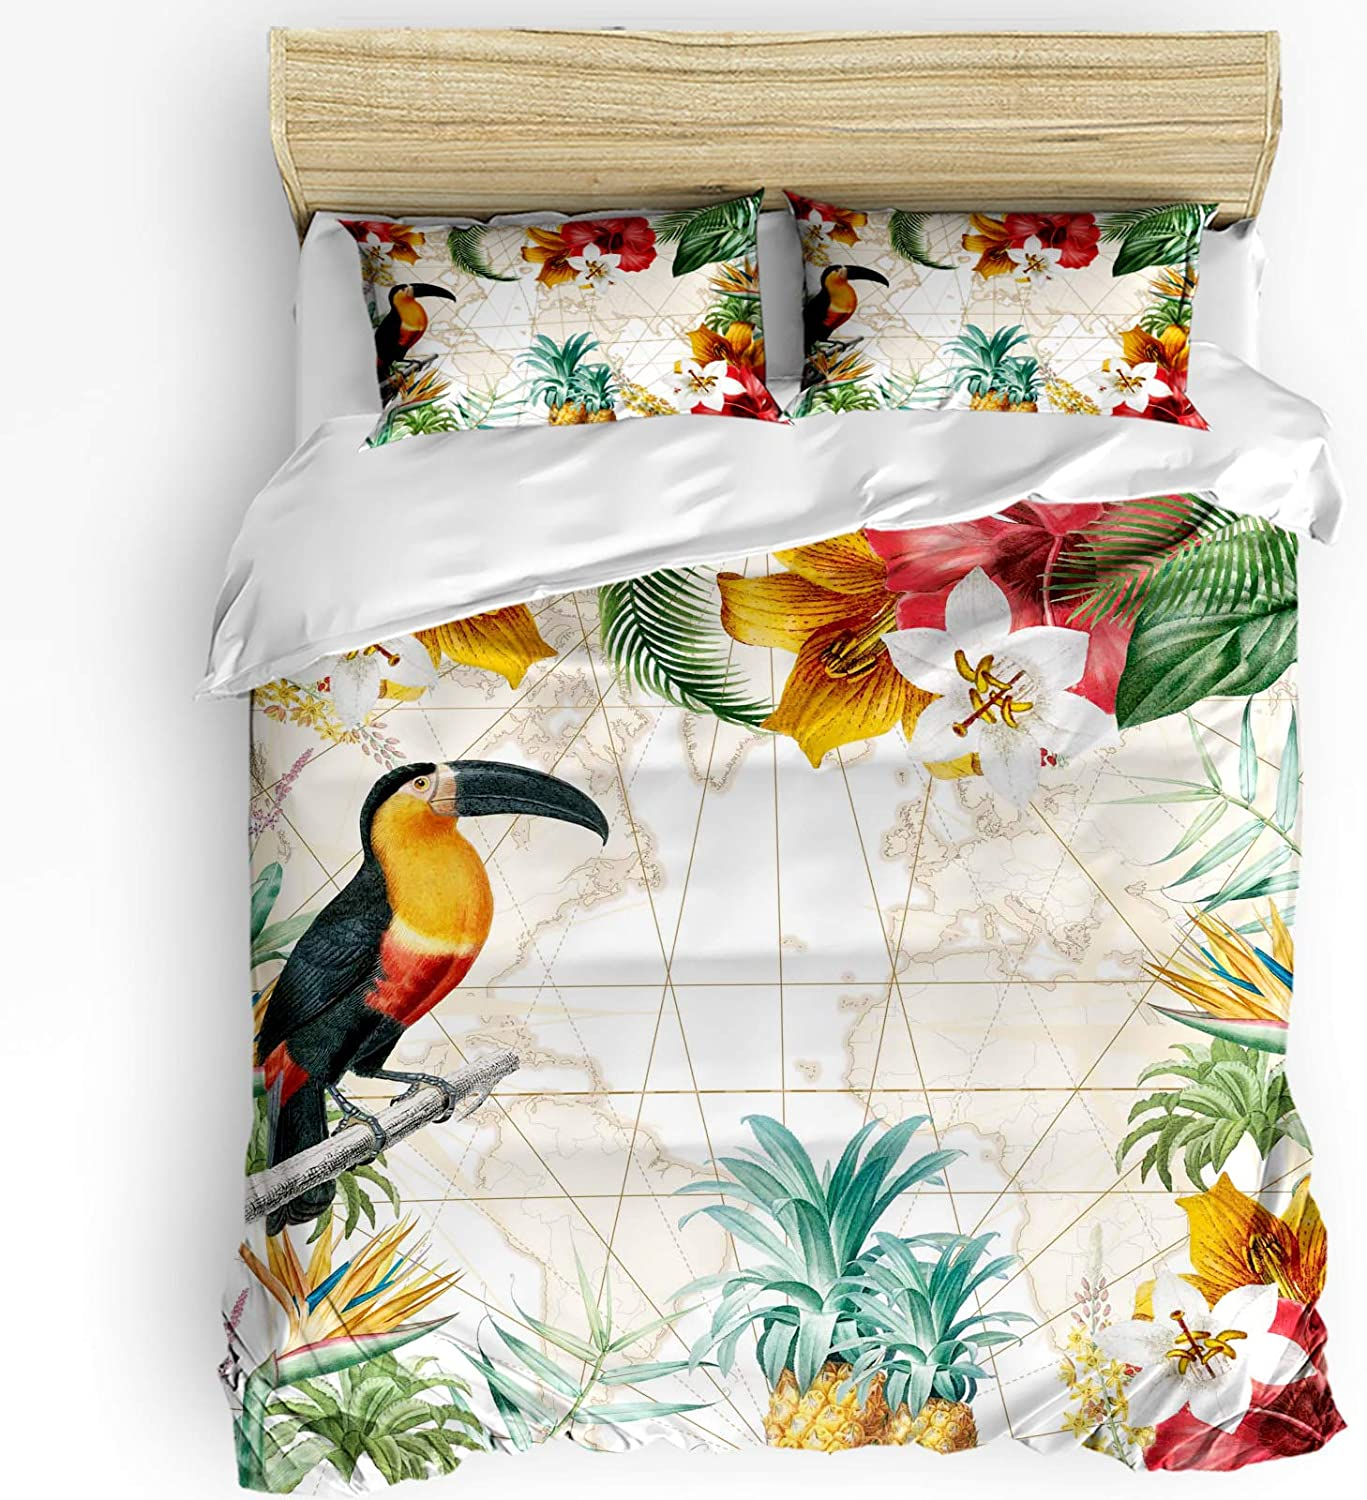 Sale price 3 Pieces Manufacturer direct delivery Breathable Bedding Set Bird Hibiscus Tropical Flowers